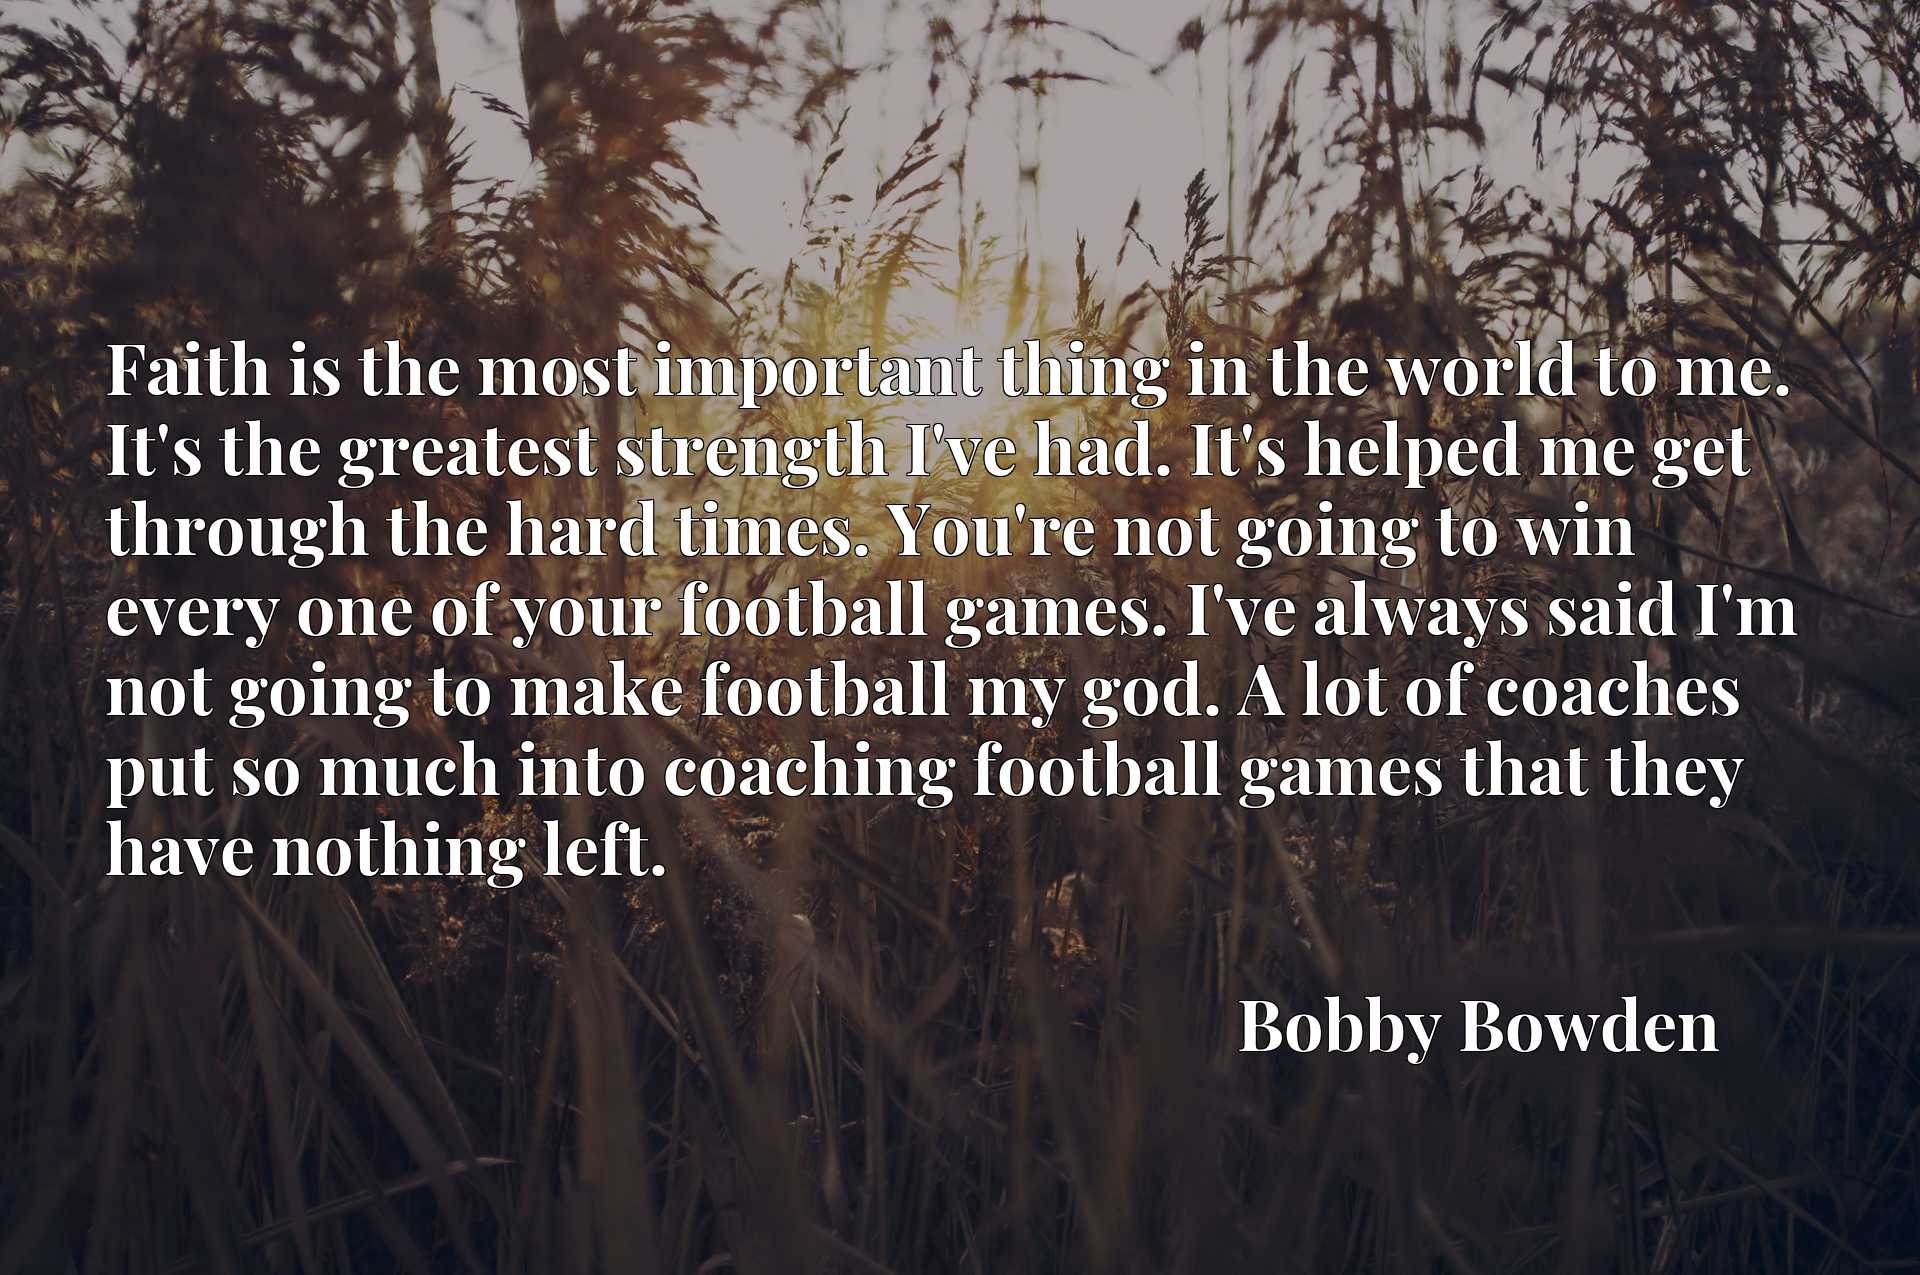 Faith is the most important thing in the world to me. It's the greatest strength I've had. It's helped me get through the hard times. You're not going to win every one of your football games. I've always said I'm not going to make football my god. A lot of coaches put so much into coaching football games that they have nothing left.